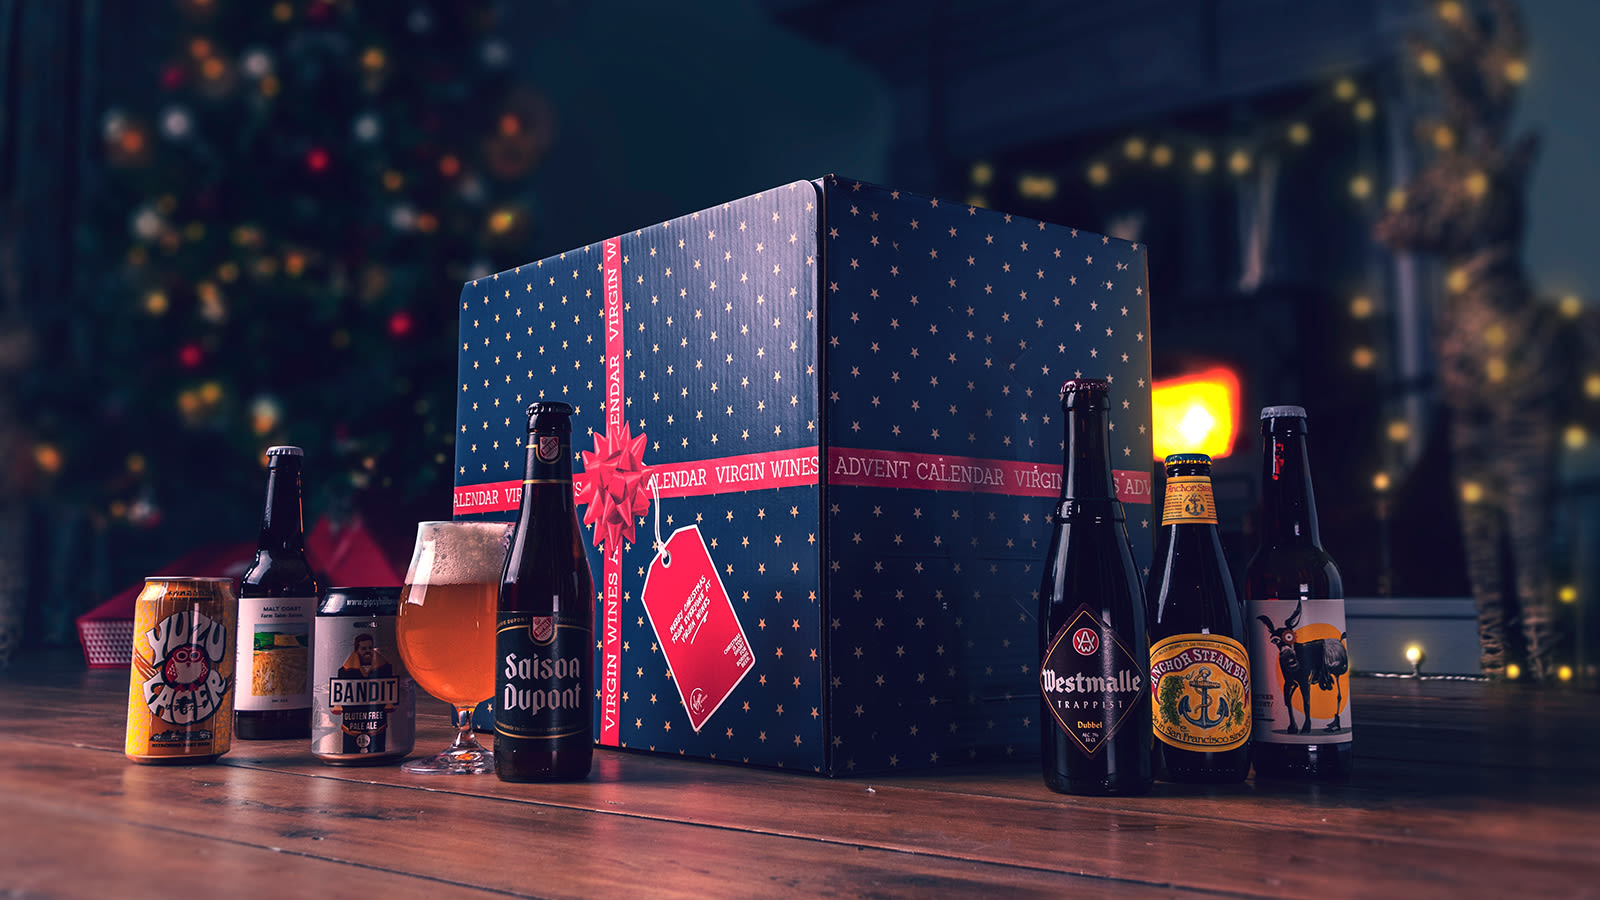 A blue Virgin Wines advent calendar with two cans of beer and five bottles of beer